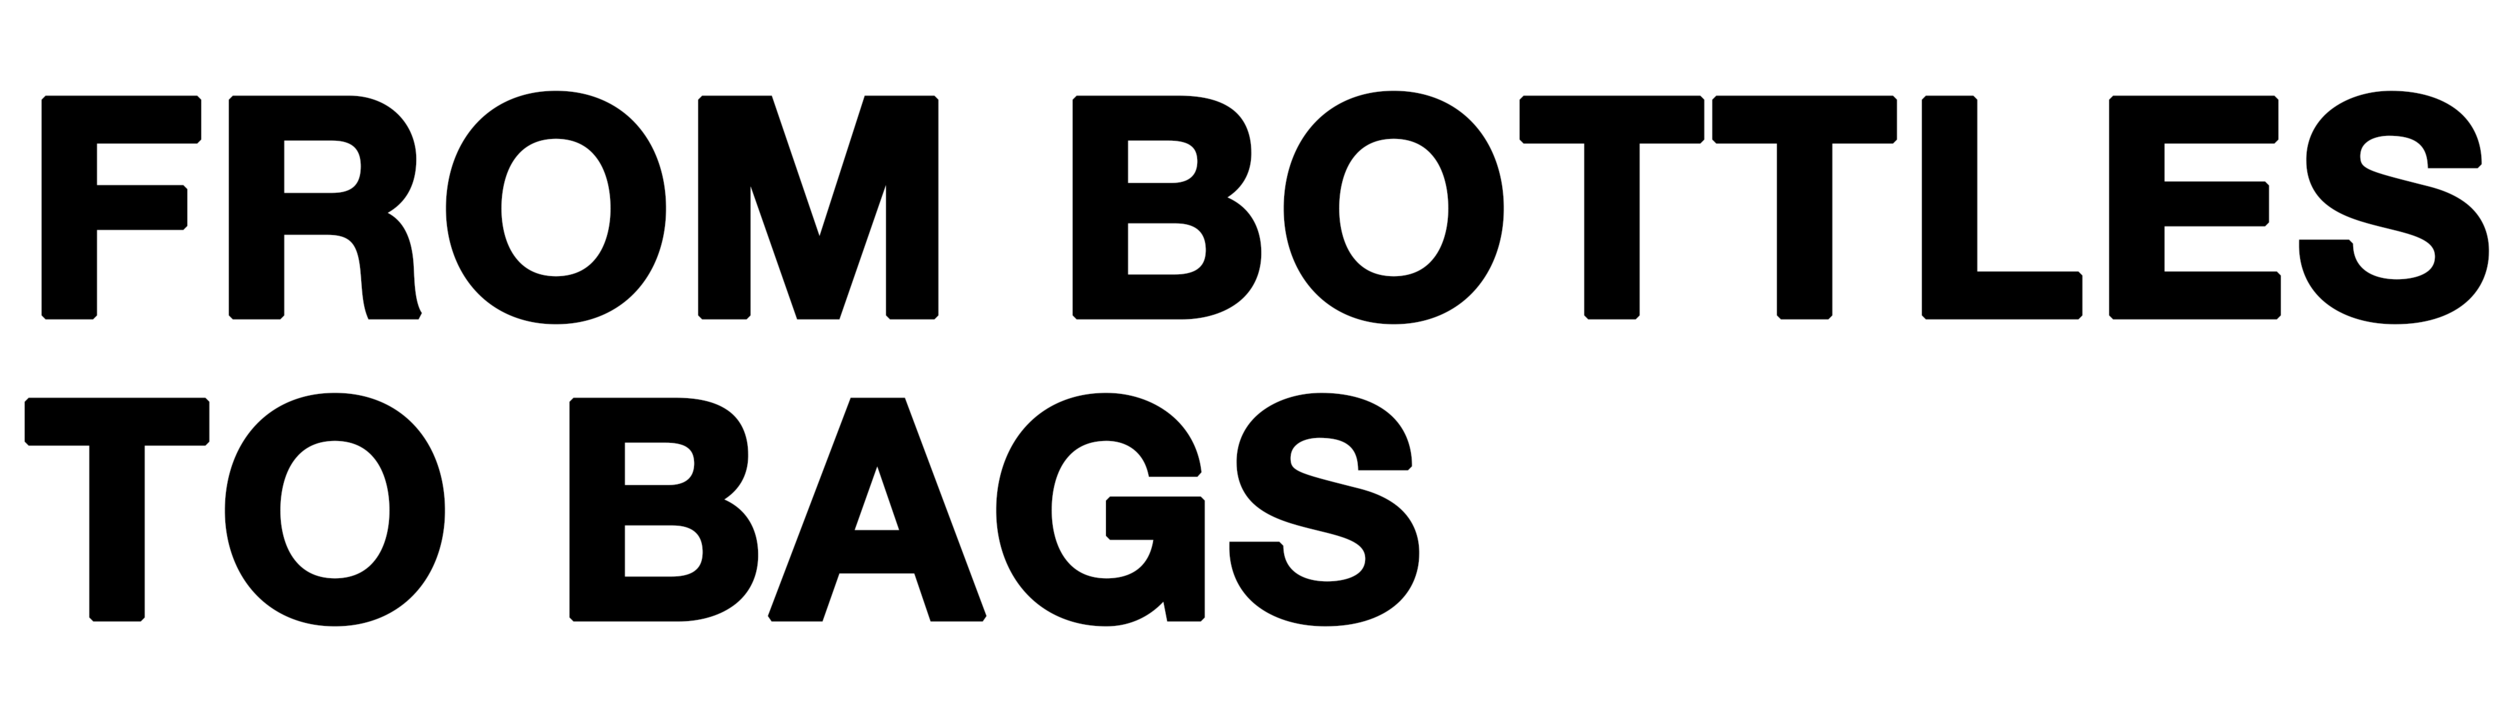 FROMBOTTLES2BAGS.png